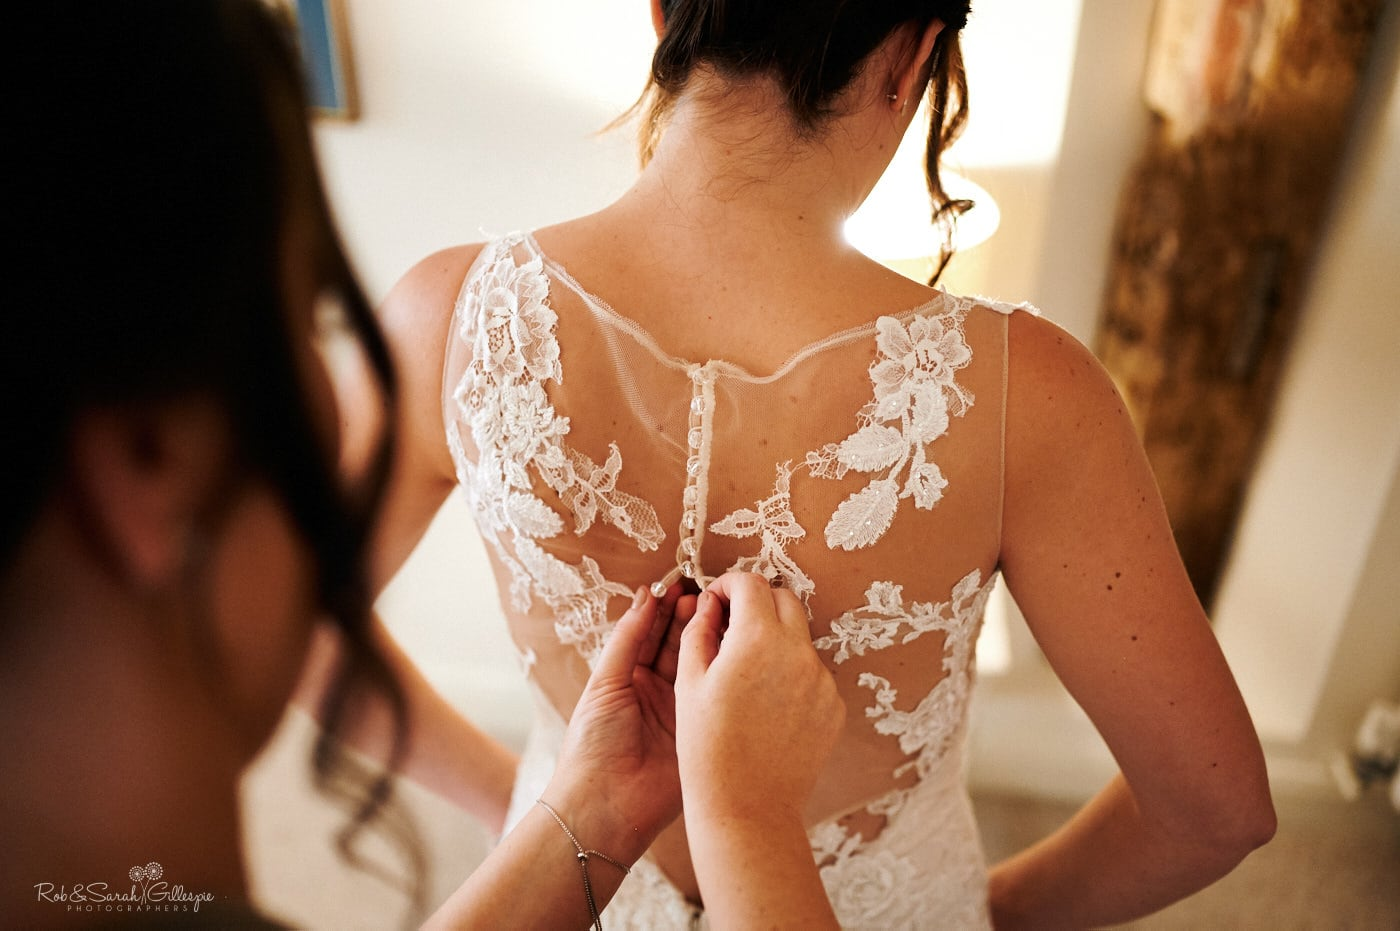 Bride has back of wedding dress fastened